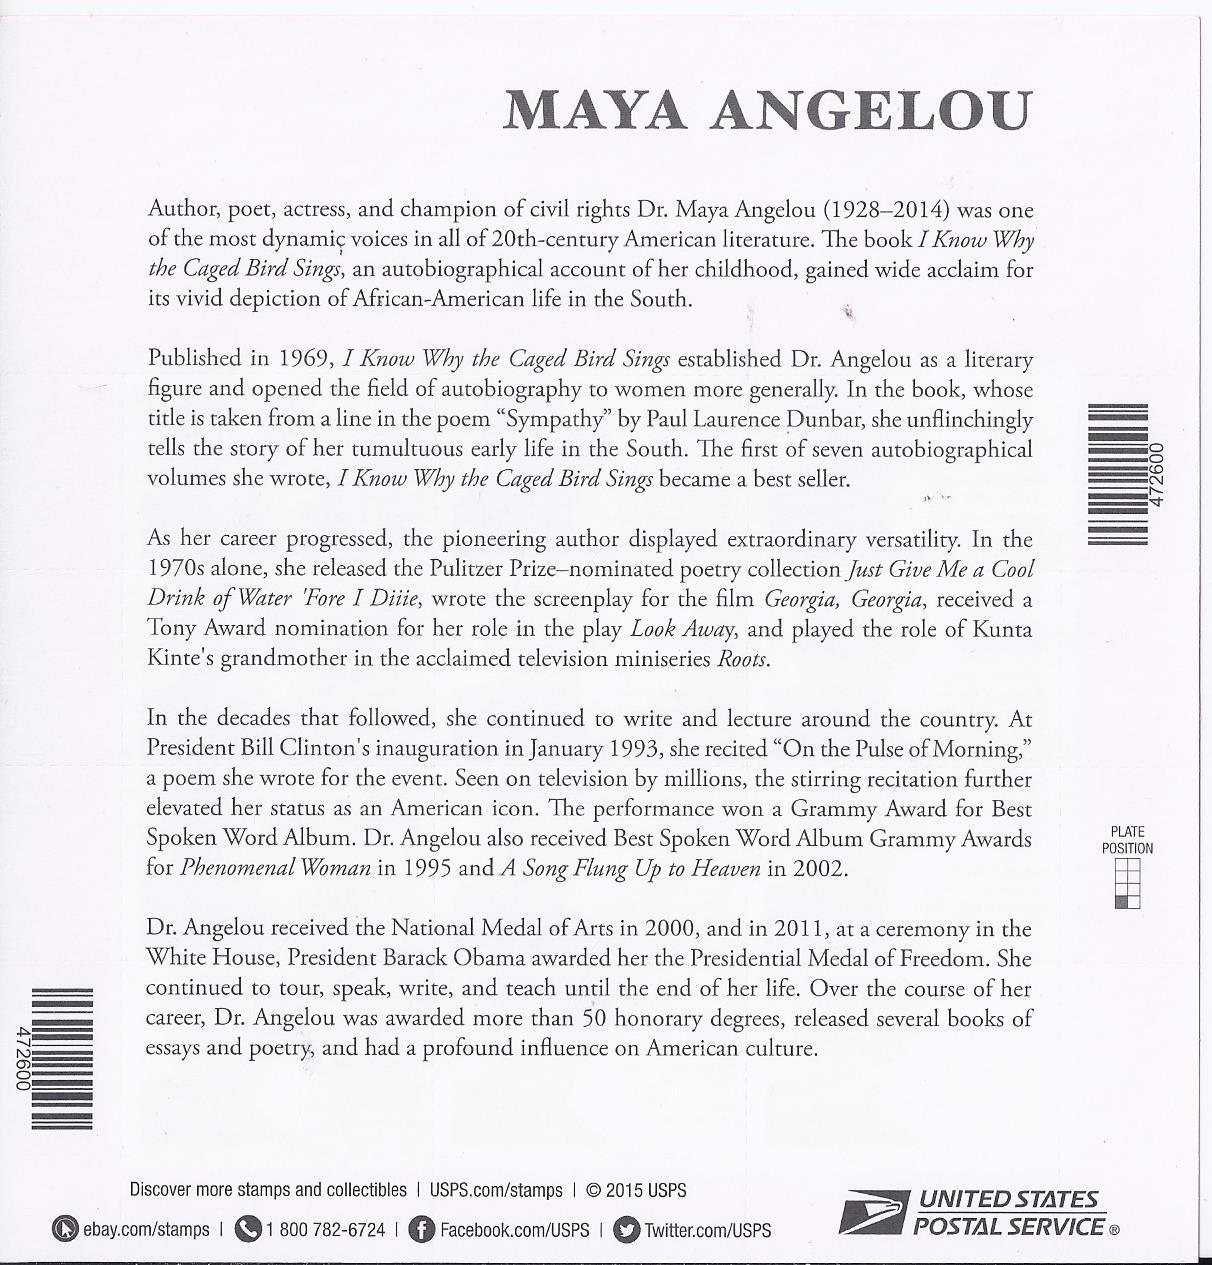 MAYA ANGELOU  2015 S/SHEET - USA MINT FOREVER Stamps, Imperfect Printing